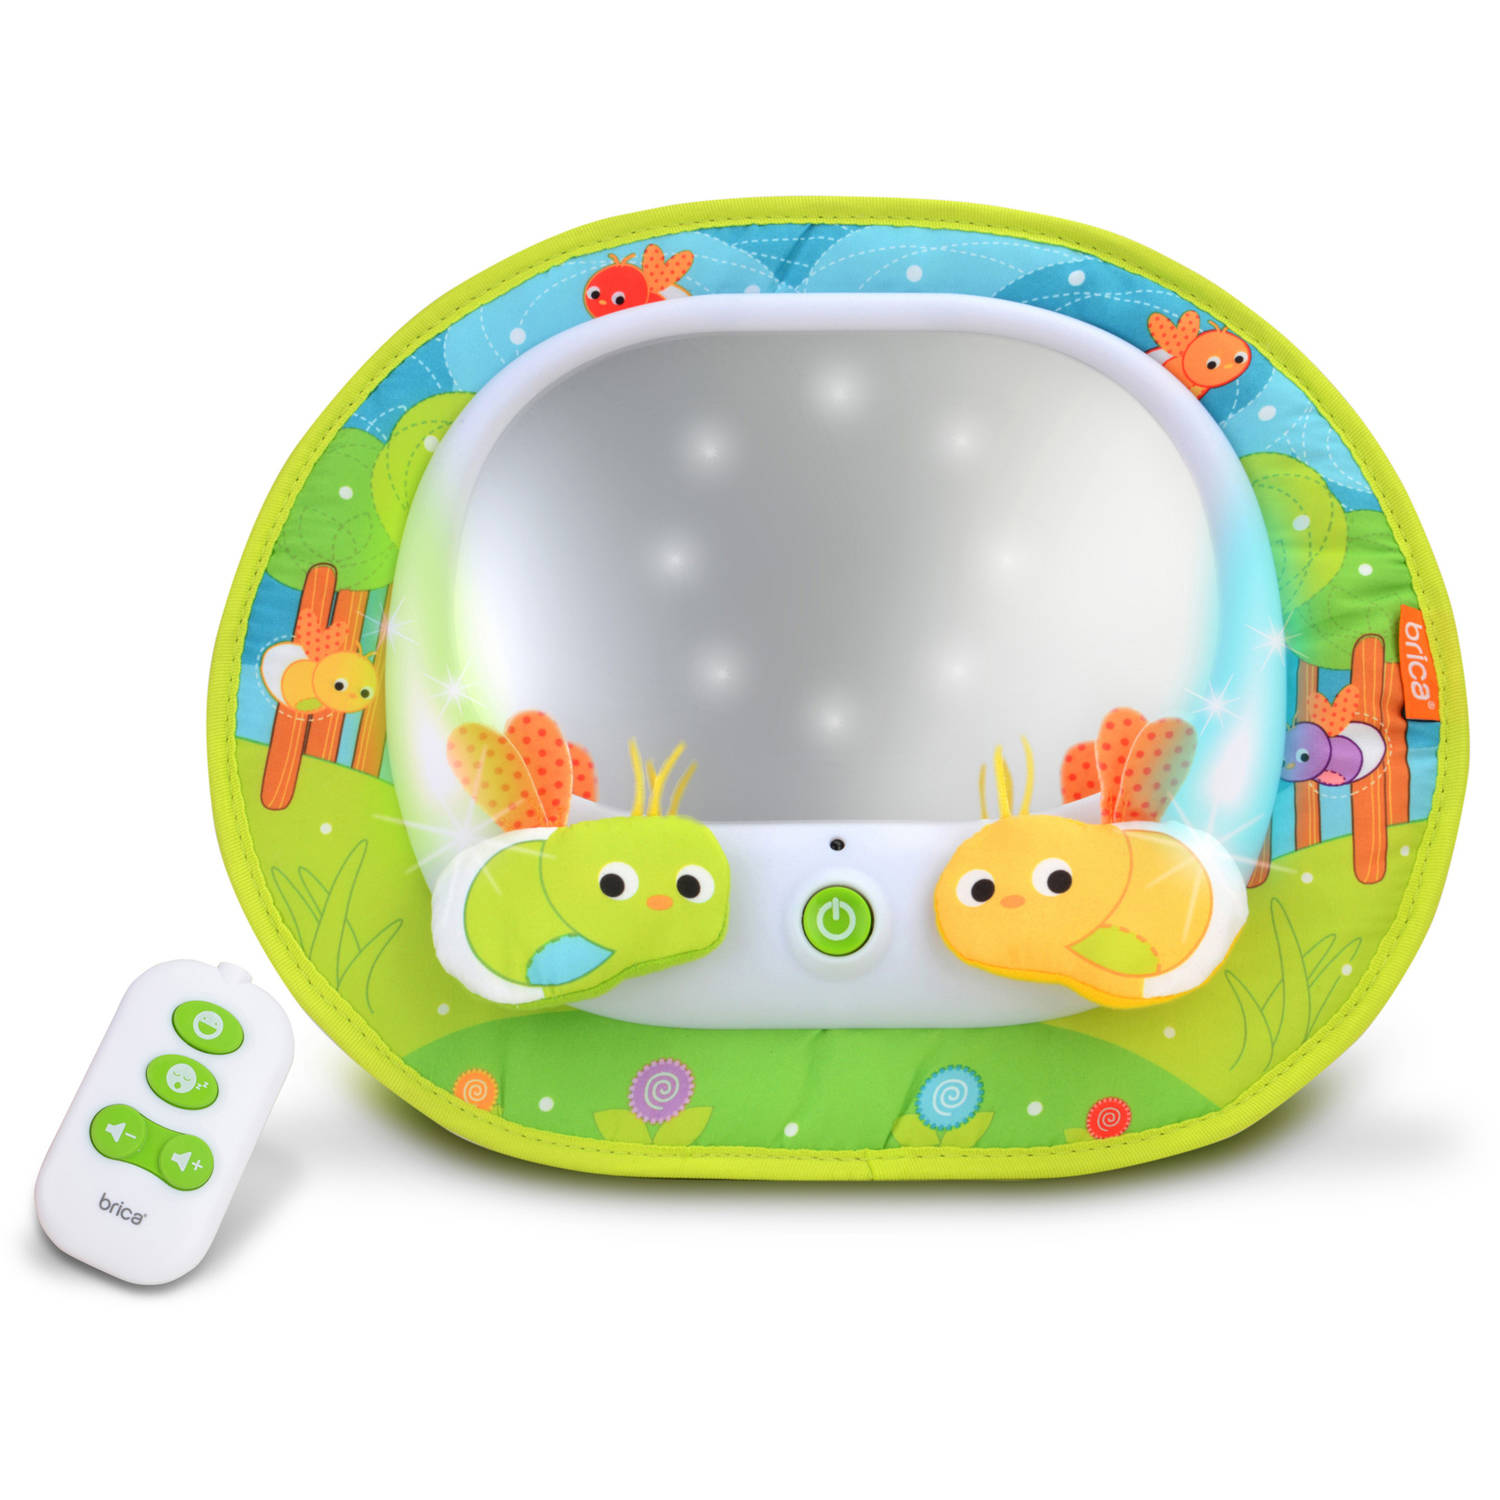 BRICA Magical Firefly Baby In-Sight Mirror